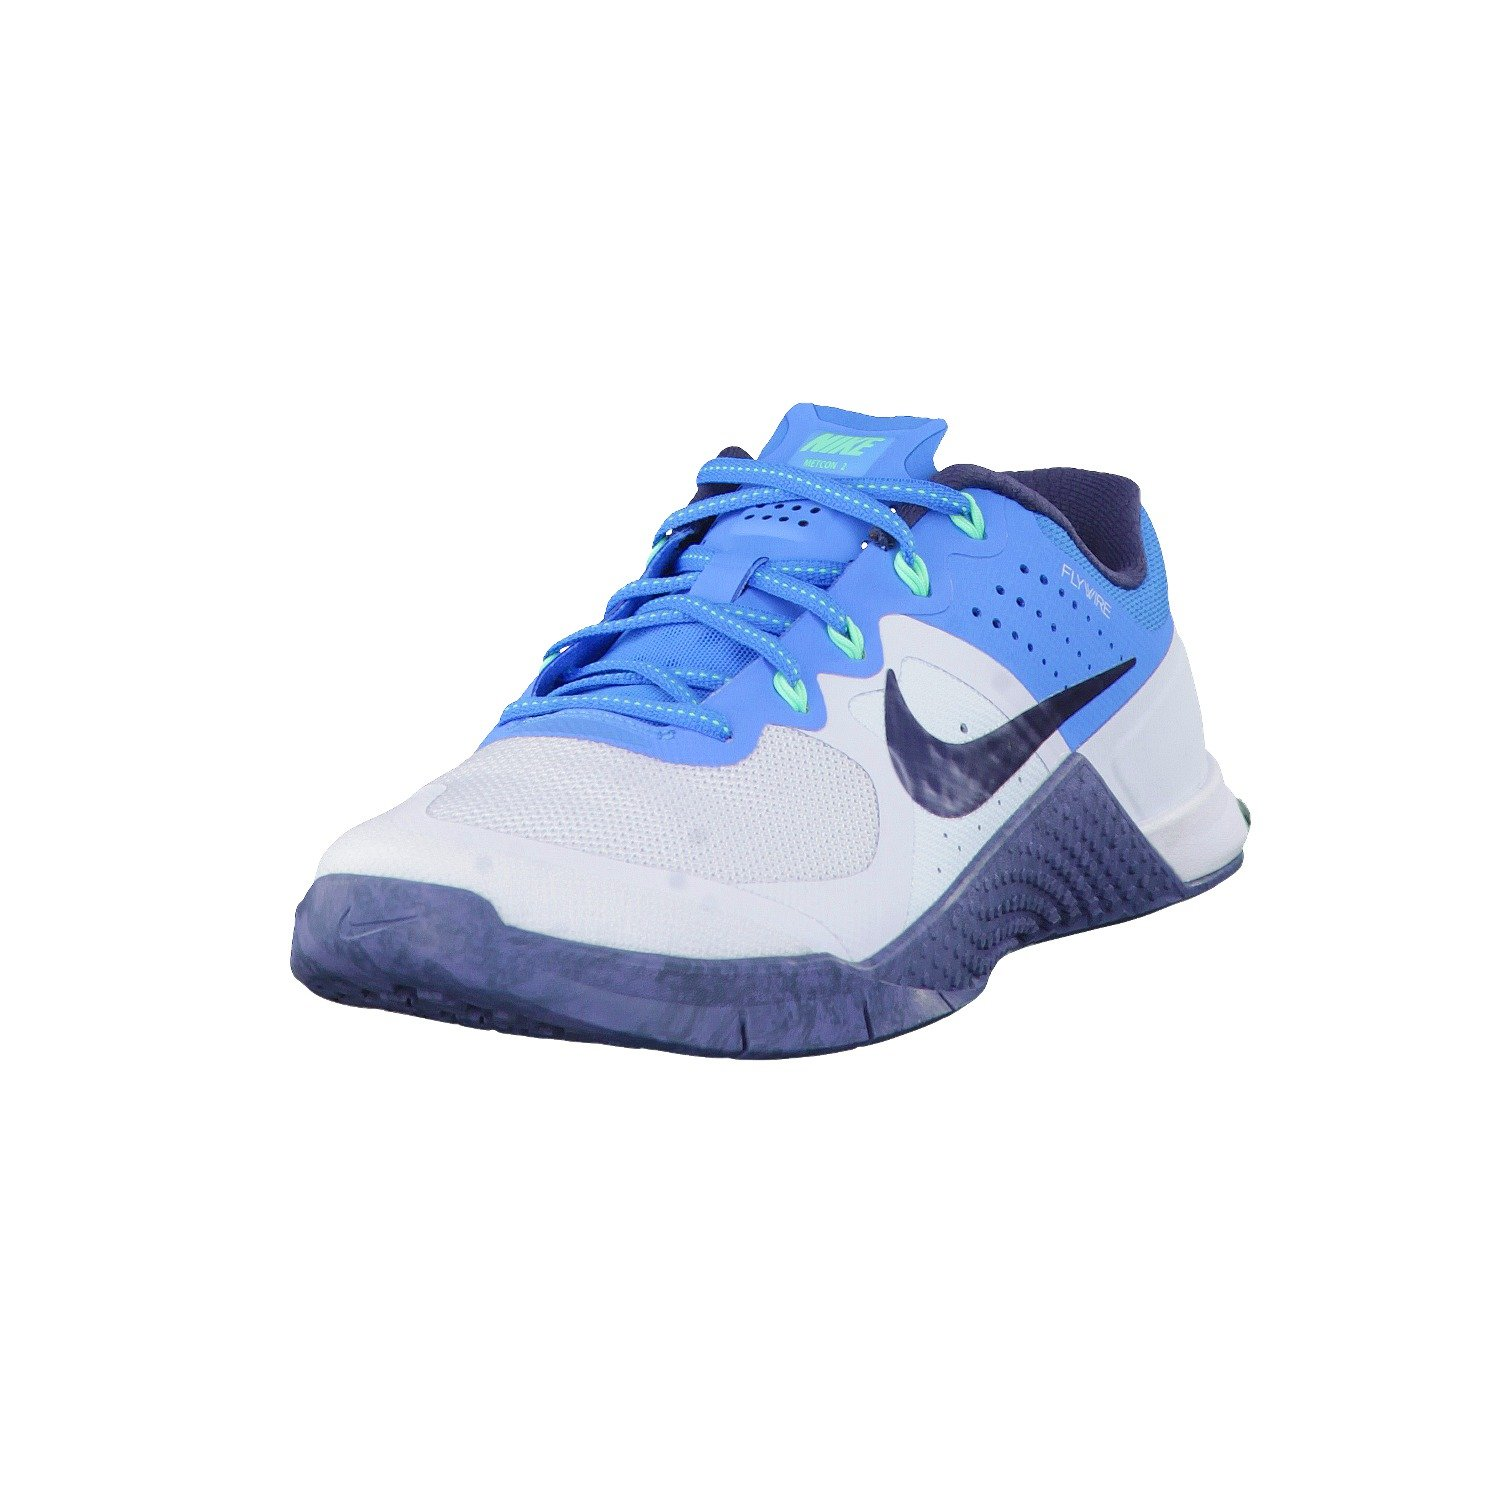 Nike Womens Metcon 2 Training Shoes - Blue Tint/ Squadron Blue (7) by NIKE